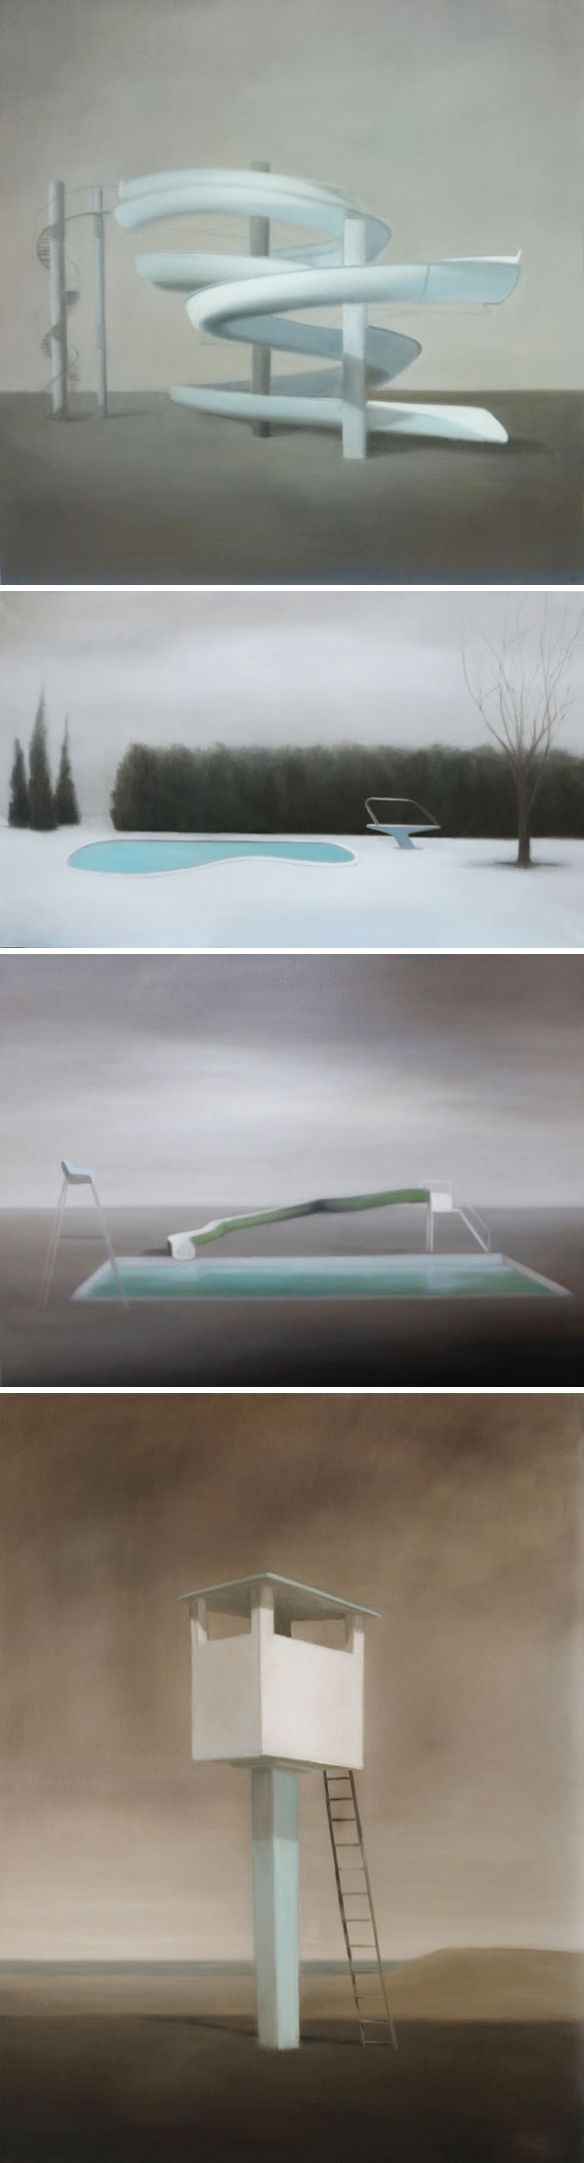 paintings by marion tivital